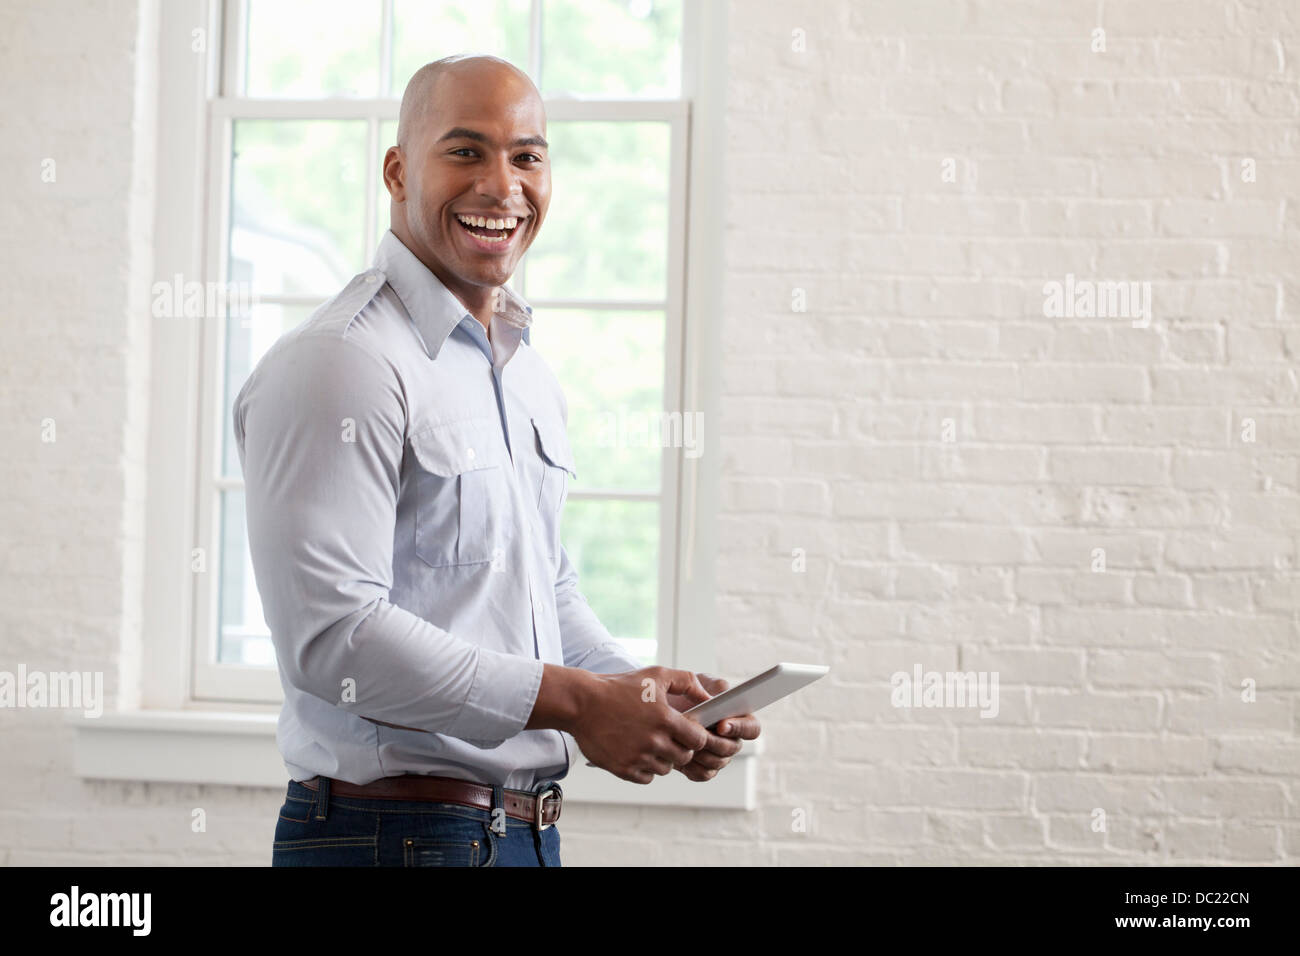 Mid adult office worker holding digital tablet and smiling, portrait - Stock Image